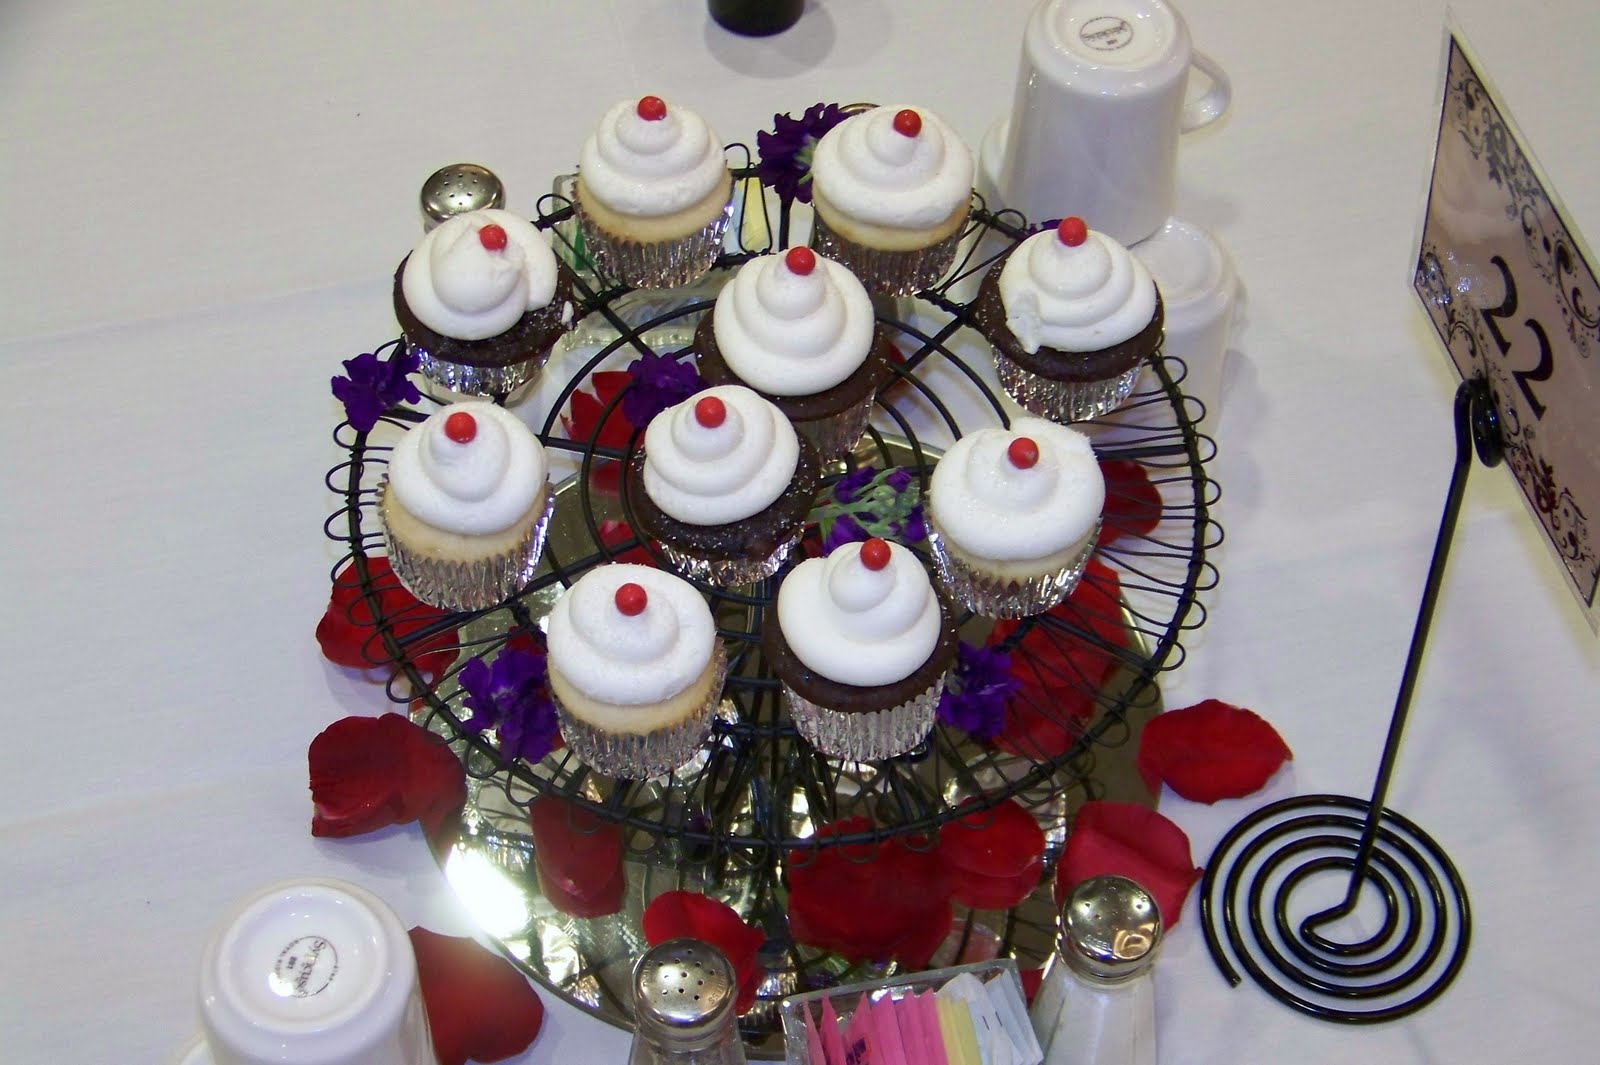 7 UP CUPCAKE CENTERPIECES